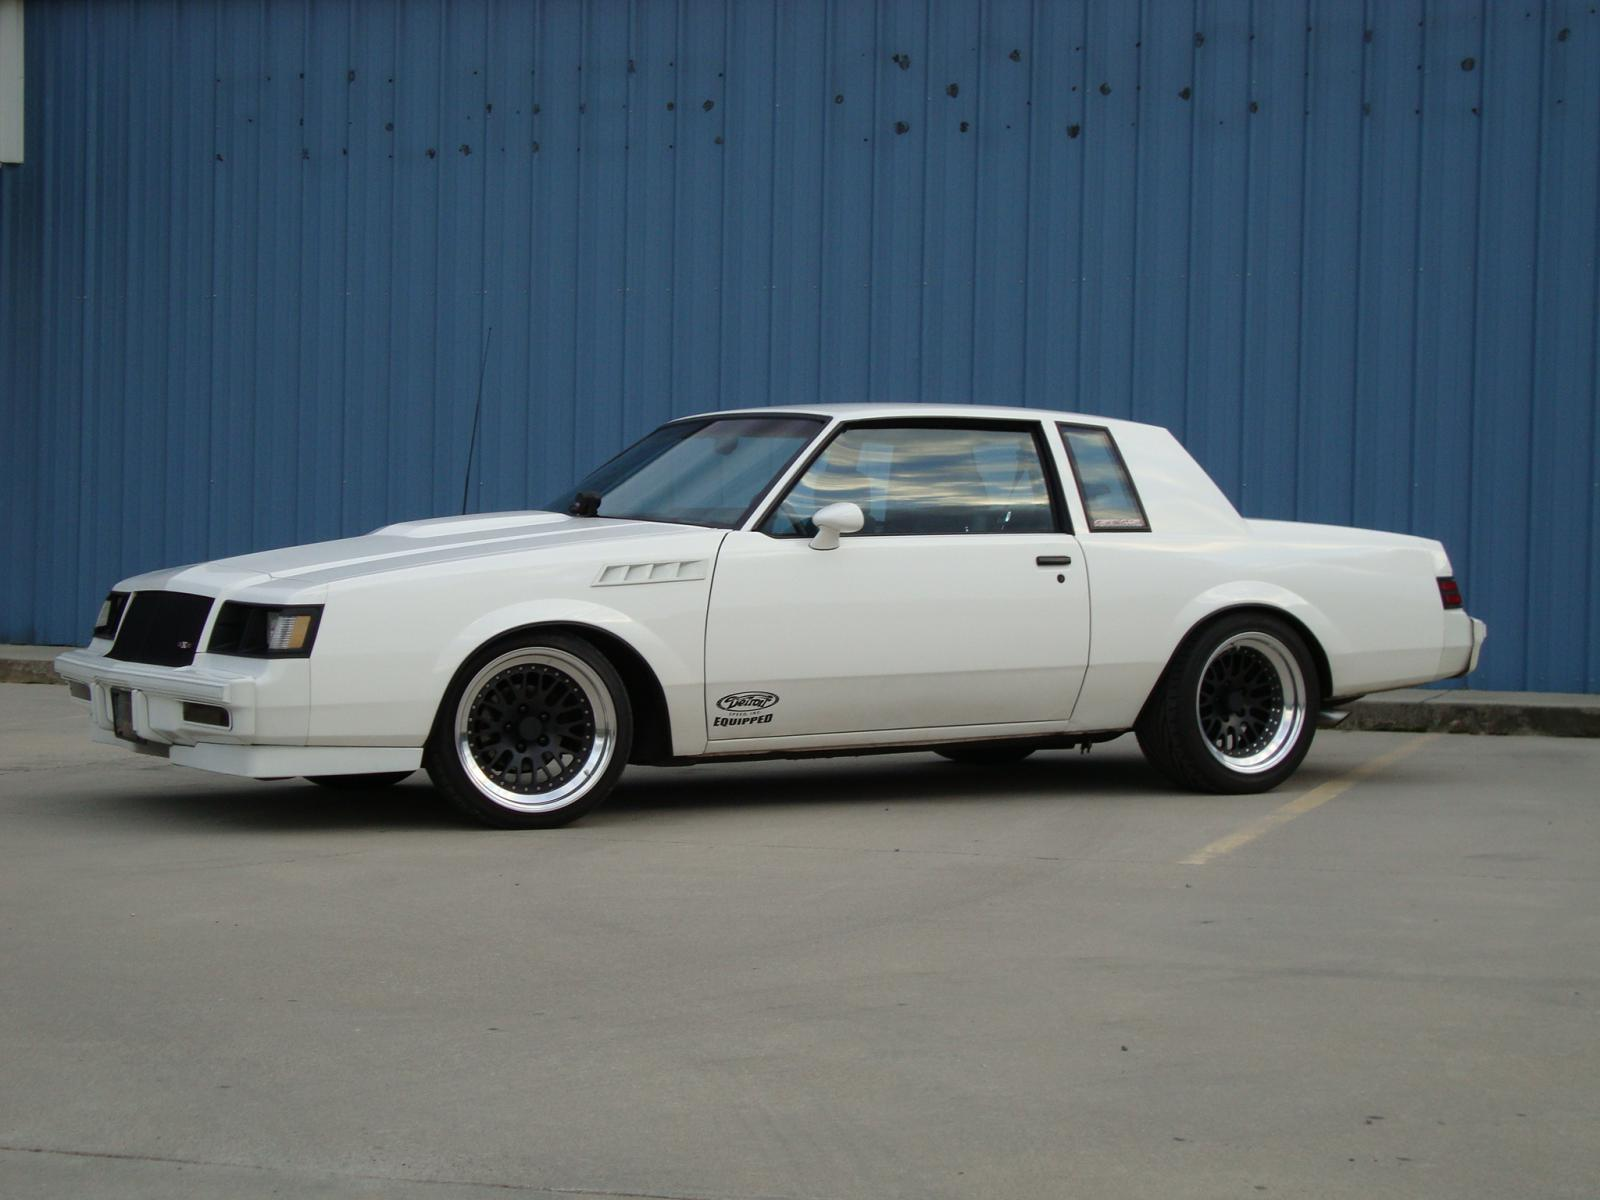 82 Buick Regal Partsnew Member With Grand National Gbodyforum 78 2005 Lacrosse Engine Diagram G Body Roll Call Page 25